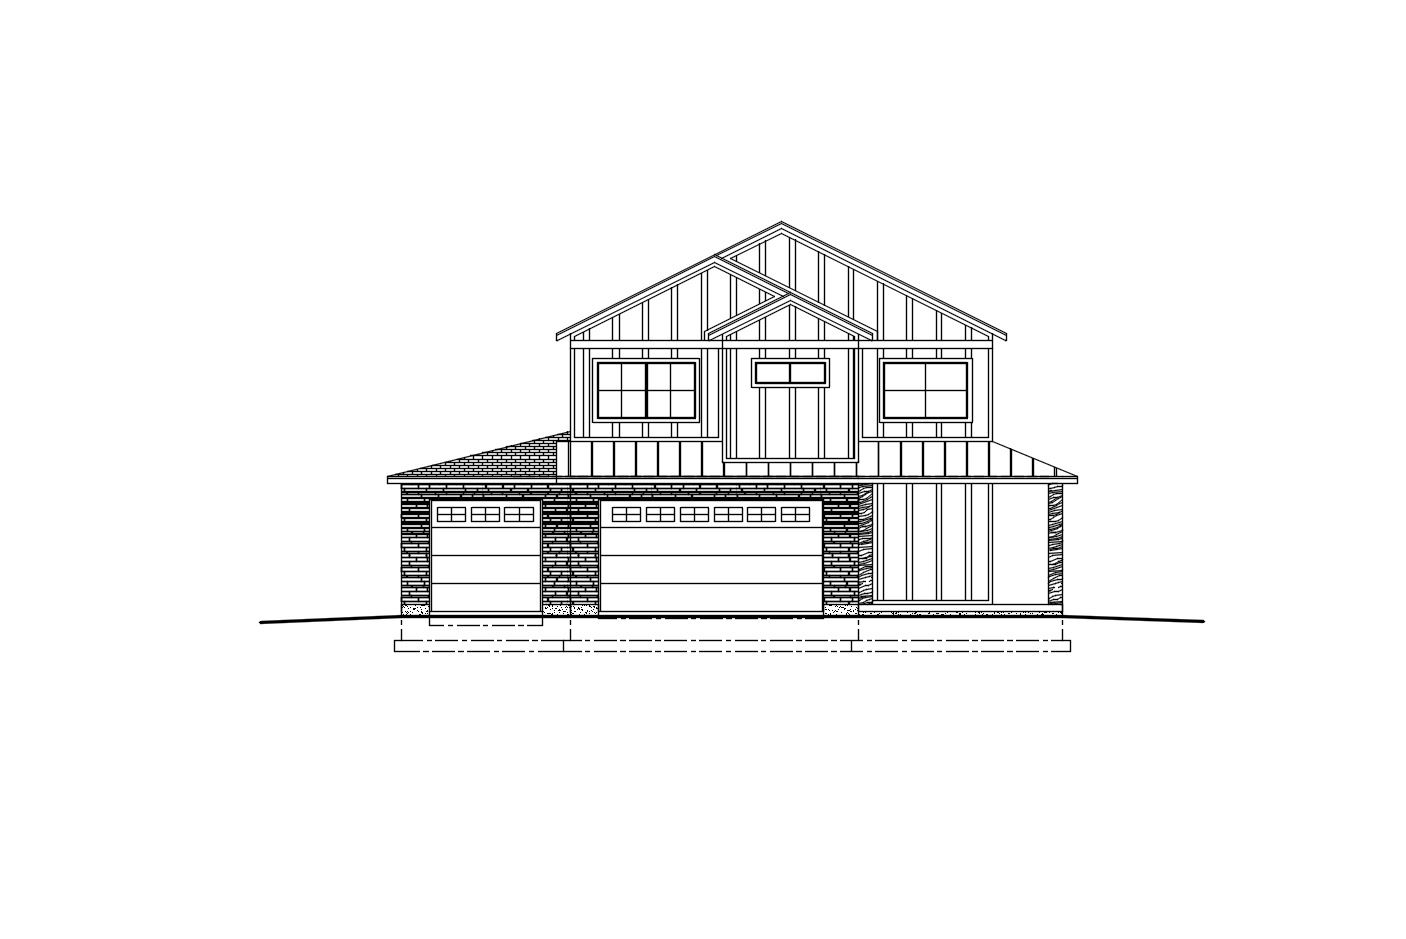 Photo of 581 W 600 S, Springville, UT 84663 (MLS # 1717046)